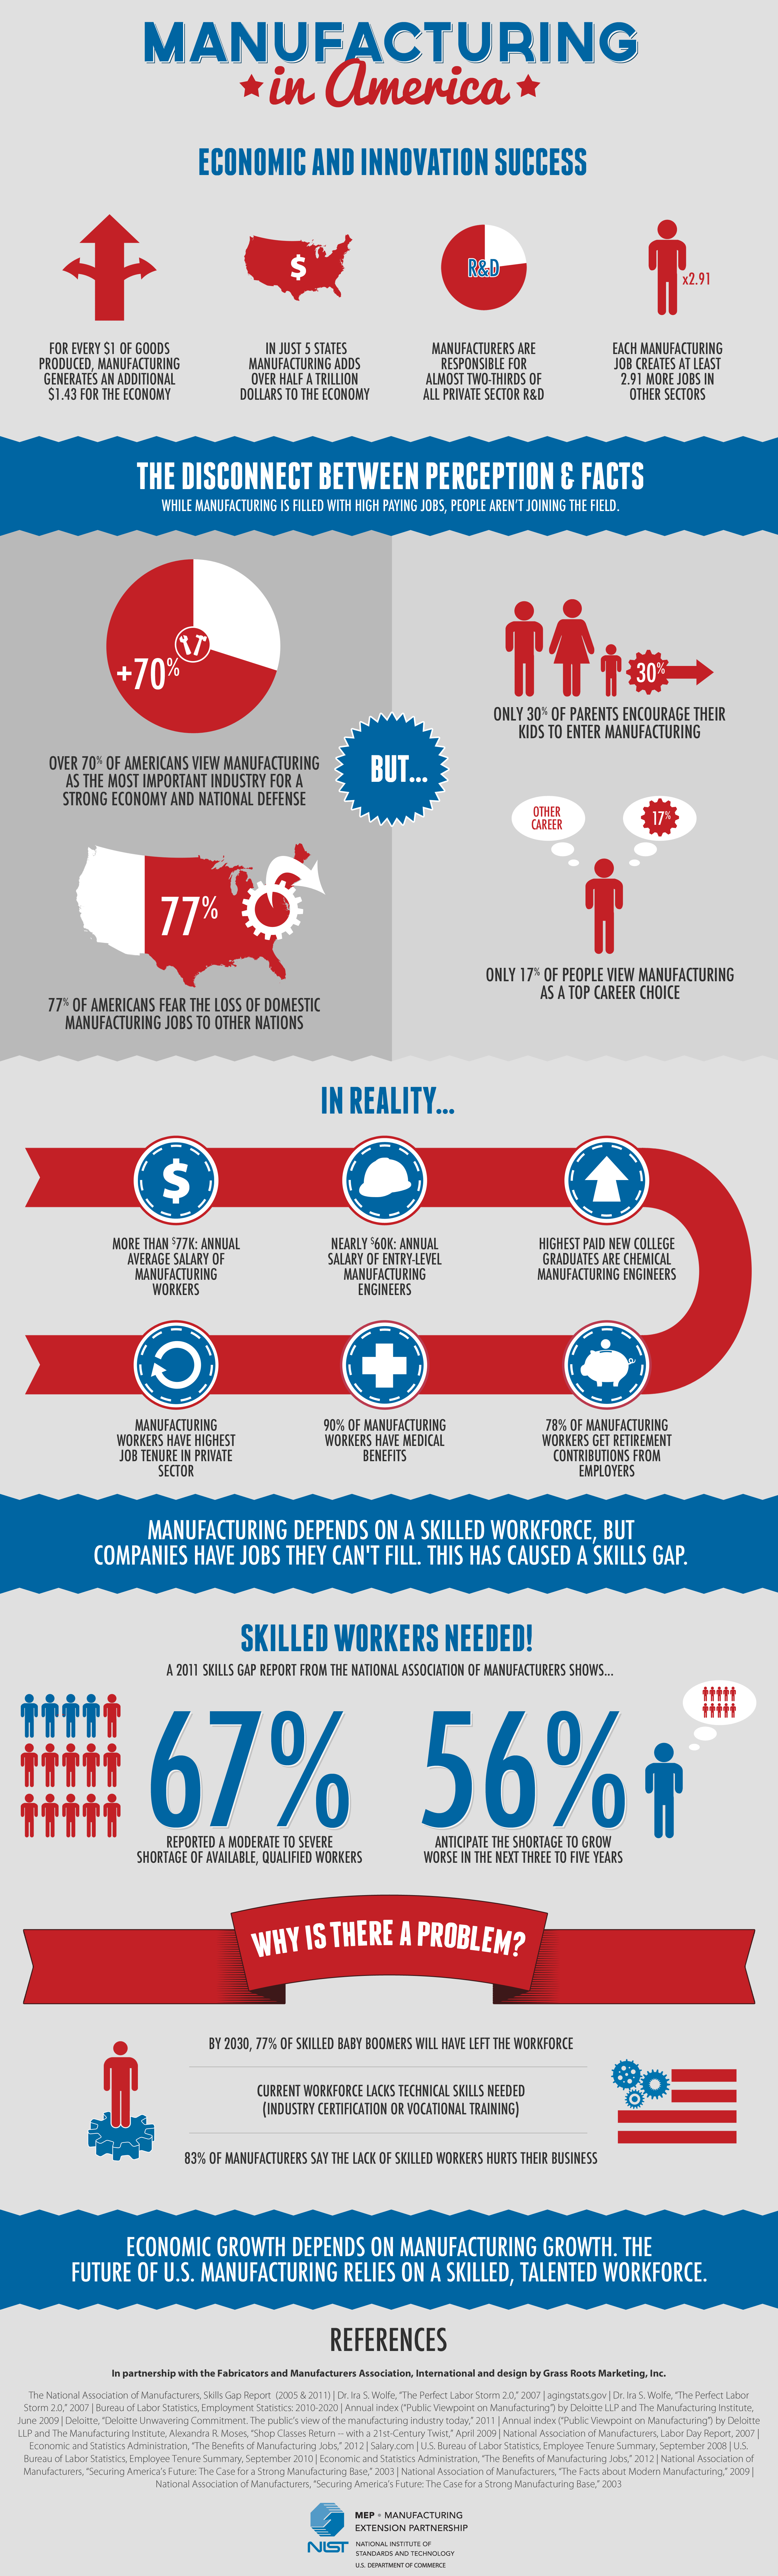 skills gaps in americas work force More and more research is showing that the us workforce has significant skills gaps when it comes to both hard and soft skills and, with the economy picking up - 2 million new jobs were created in 2013 - supply is not keeping up with demand the mckinsey global institute predicts that by 2020.